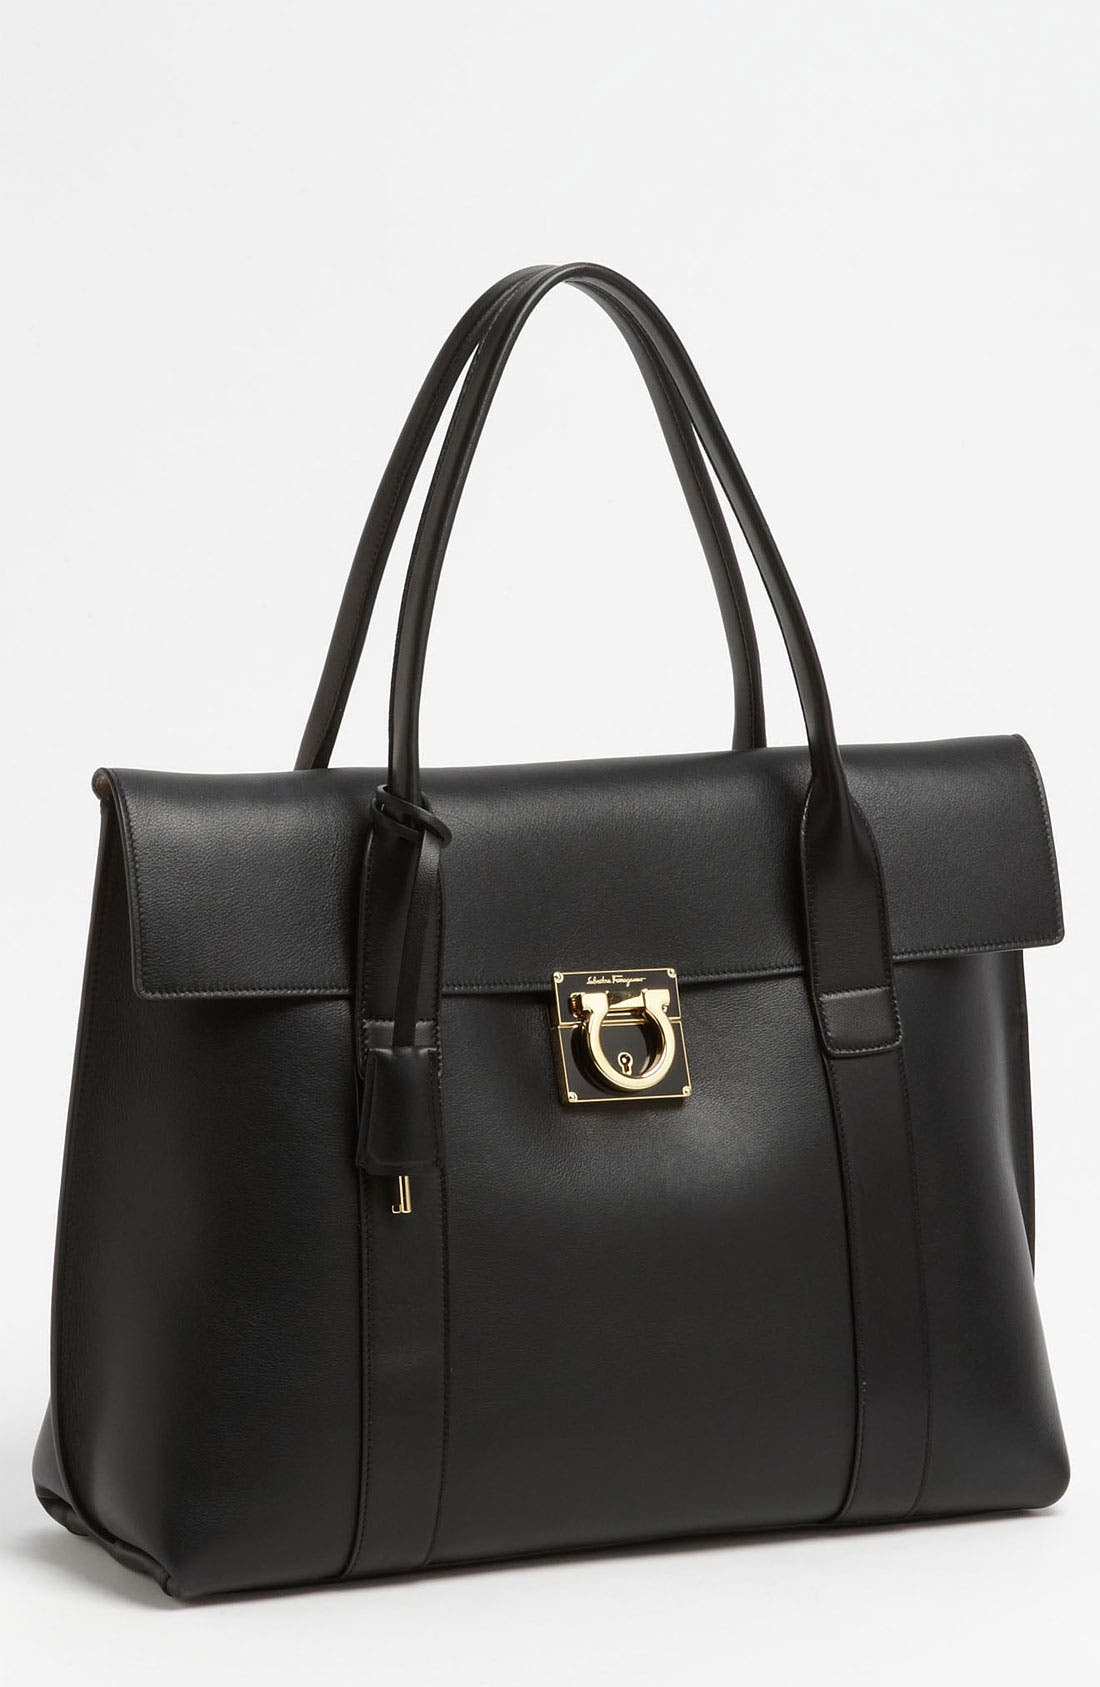 Main Image - Salvatore Ferragamo 'Large Sookie' Leather Satchel